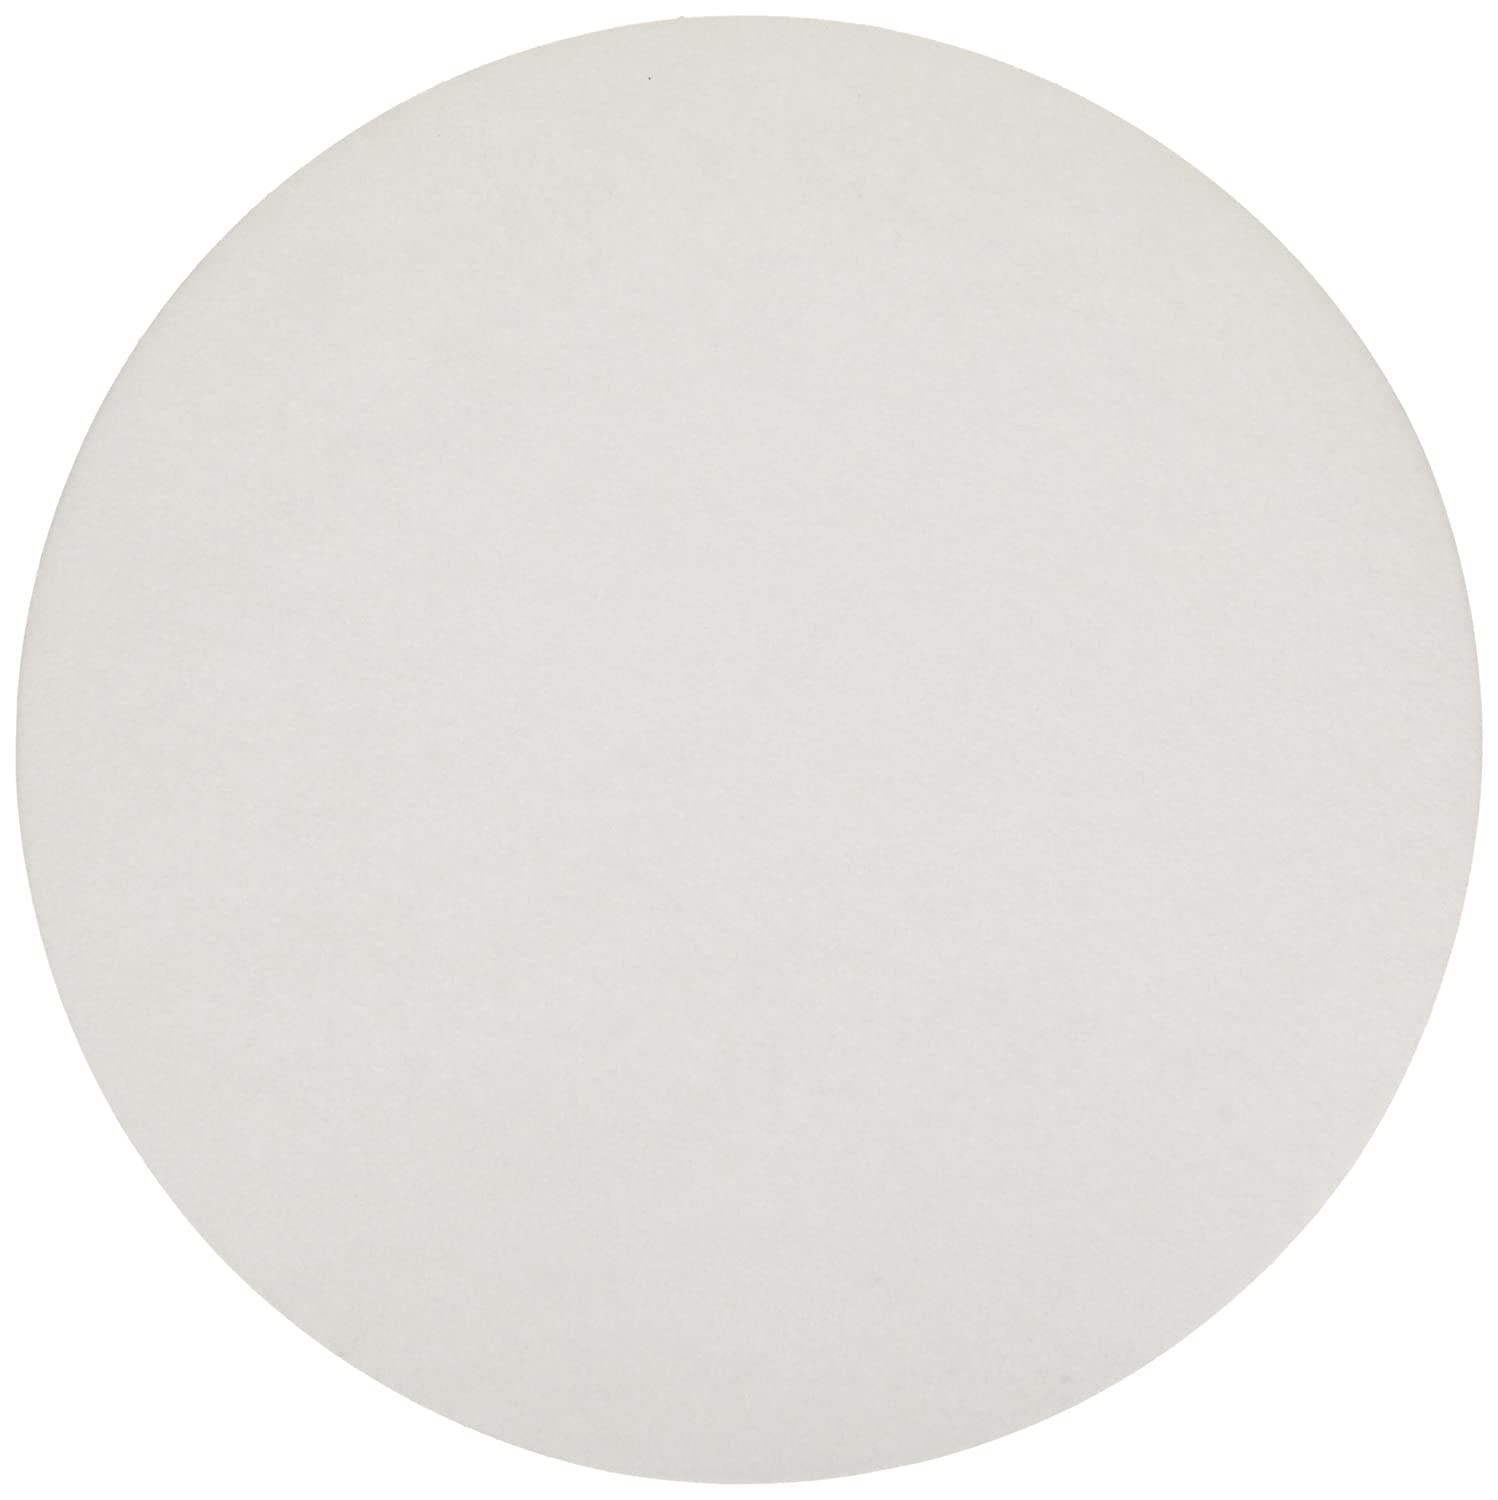 Ahlstrom 6310 1250 Qualitative Filter Paper 10 Micron Medium Flow Grade 631 12.5cm Diameter Pack of 100